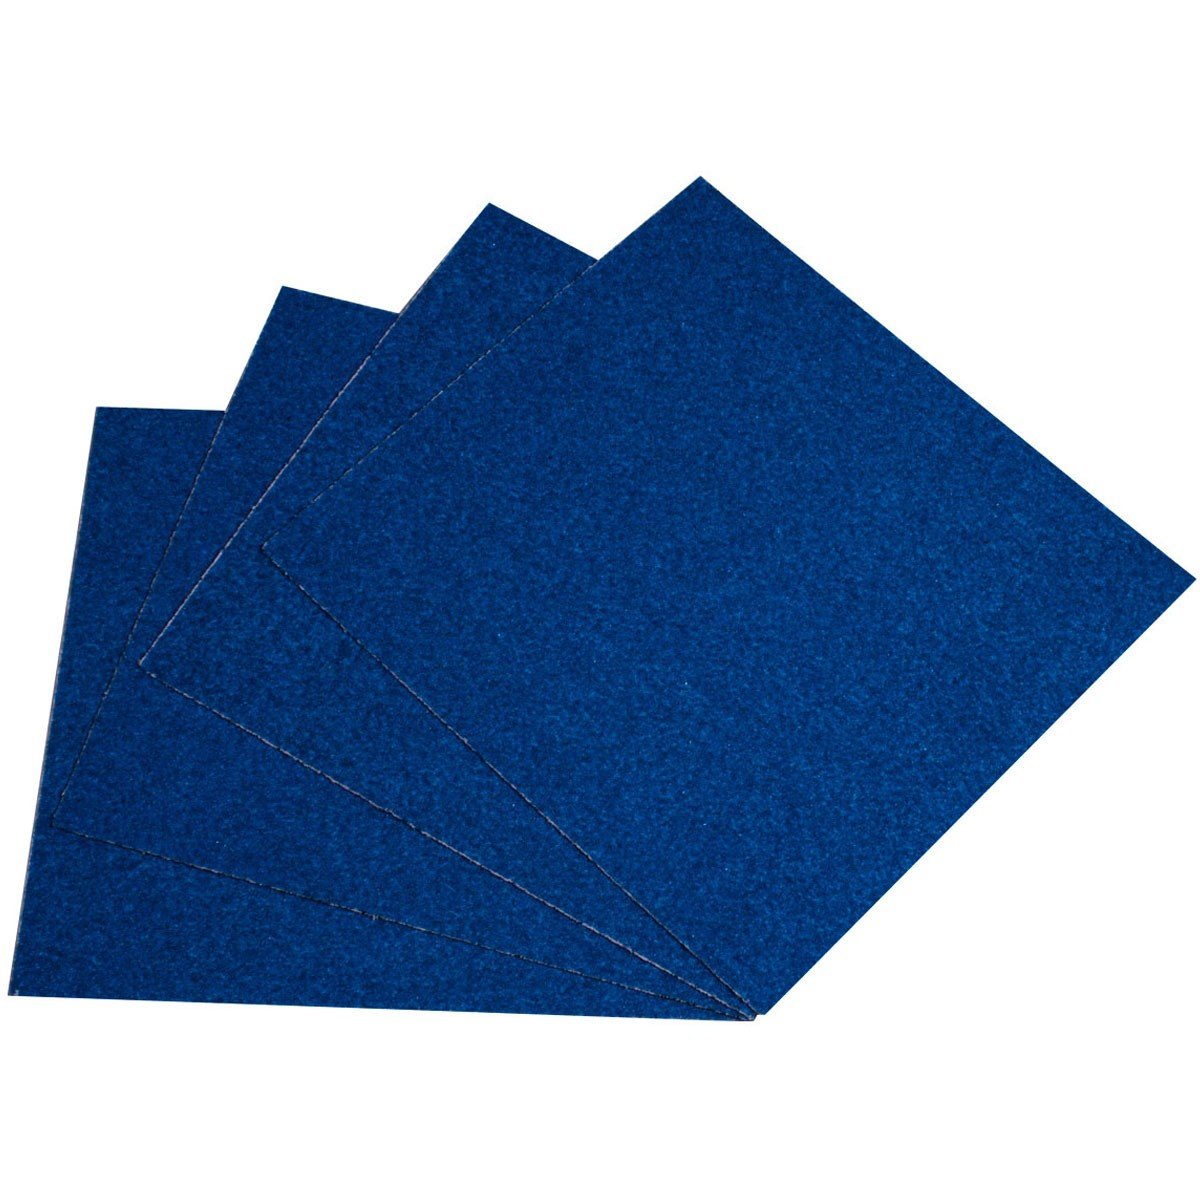 Blood Orange Heavy Duty Grit Griptape 4-Pack - Dark Blue